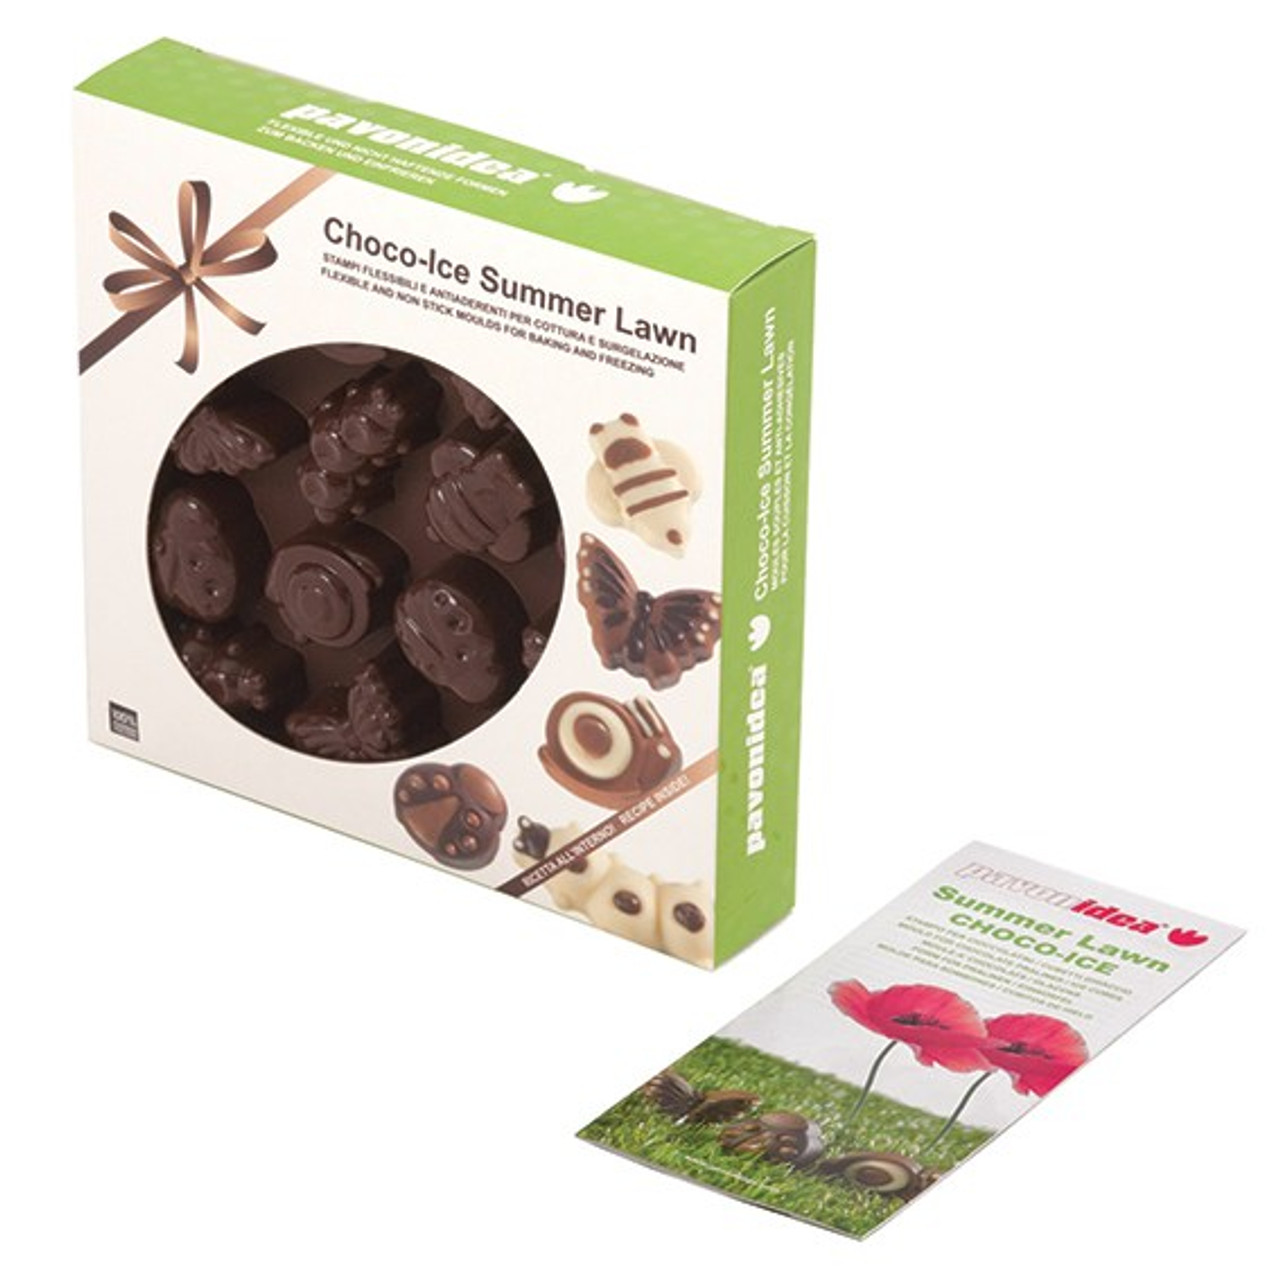 Pavoni Mould Chocolate ICE-Summer Lawn